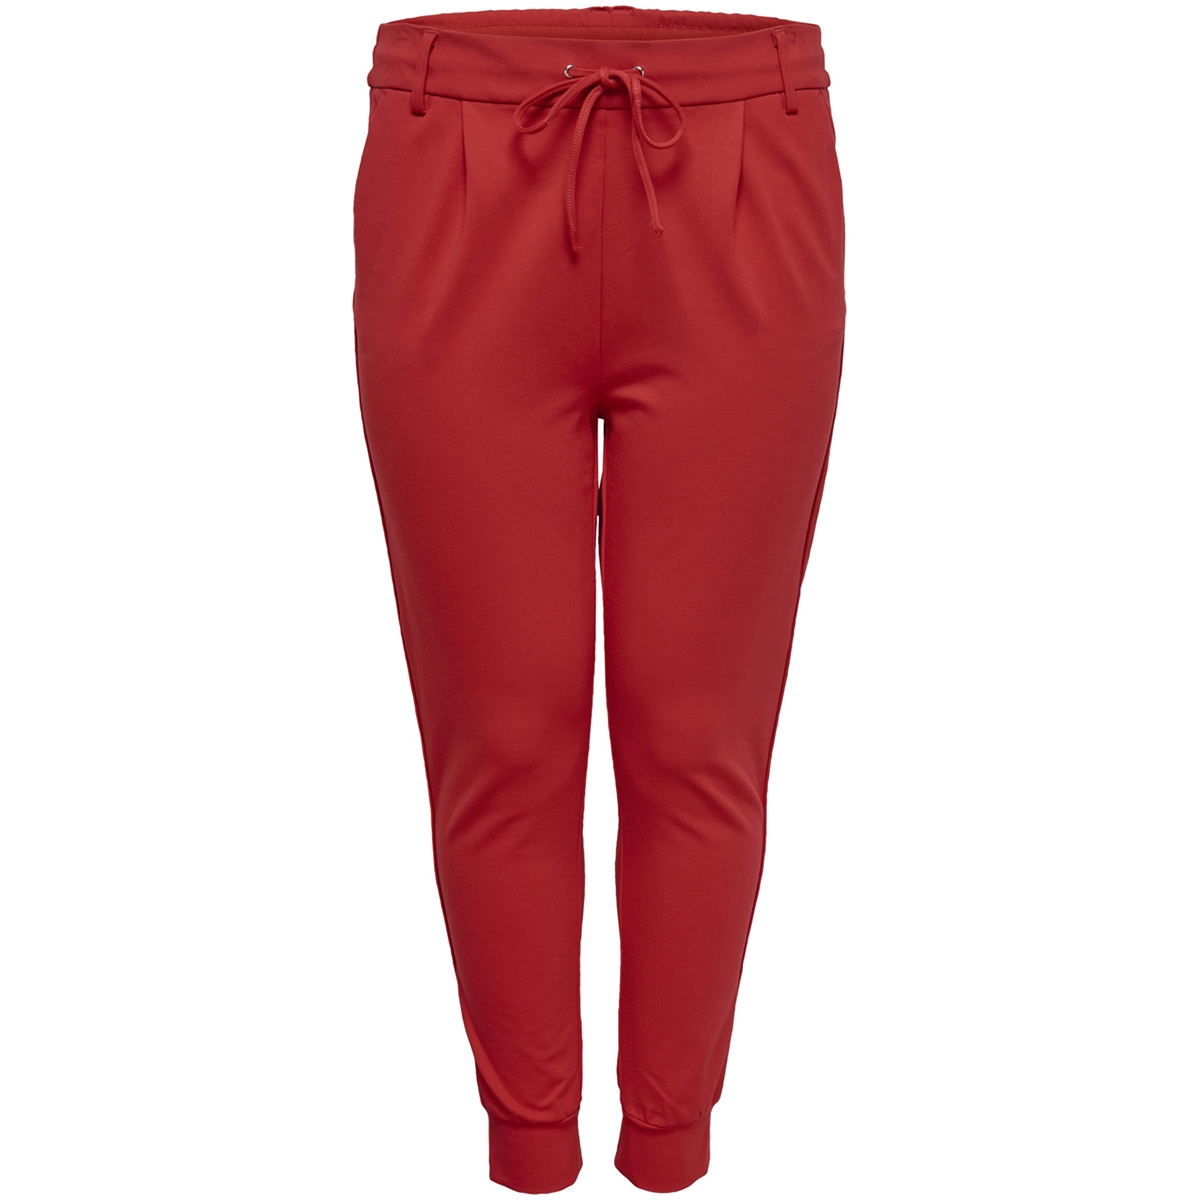 cargoldtrash rib pant ss19 15175610 only carmakoma broek high risk red/as sample